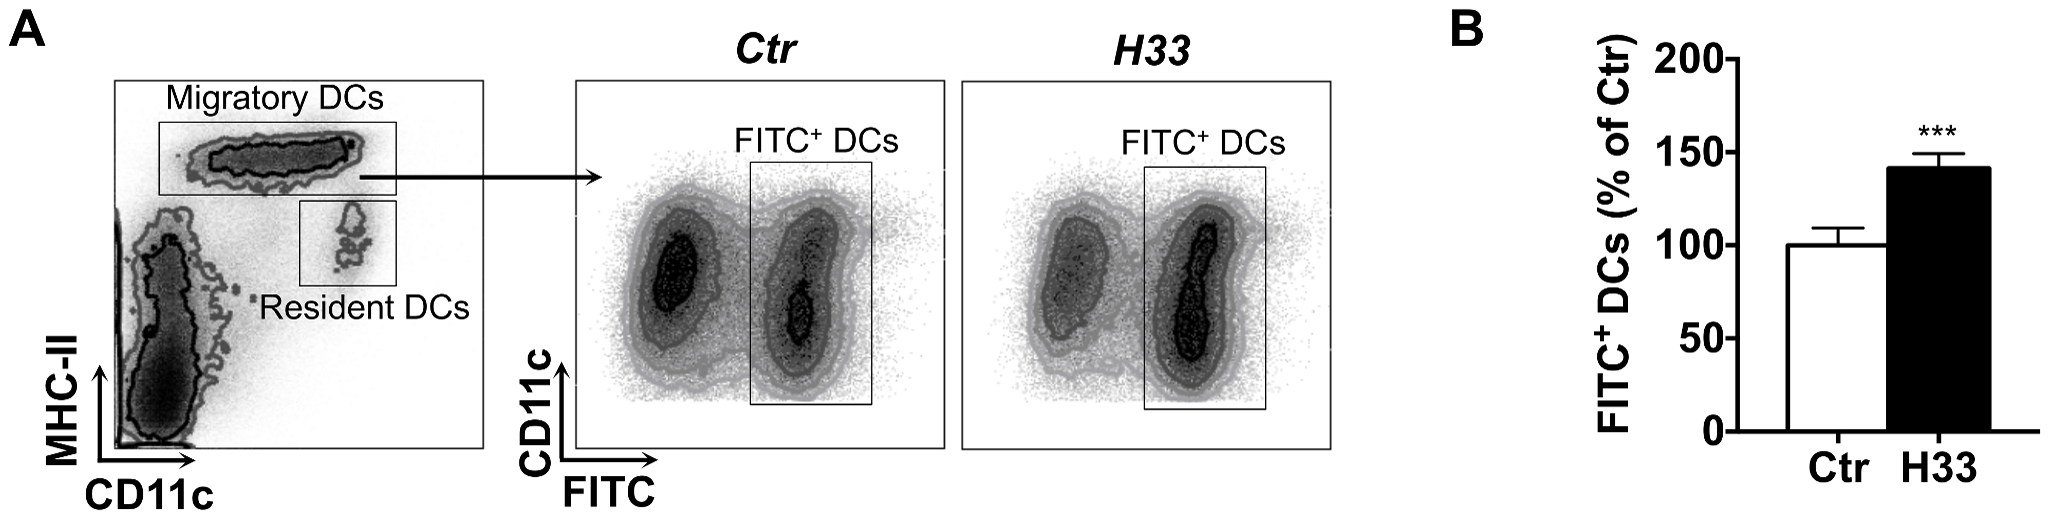 Blocking JAM-C increases the number of DCs migrating to the draining lymph node.